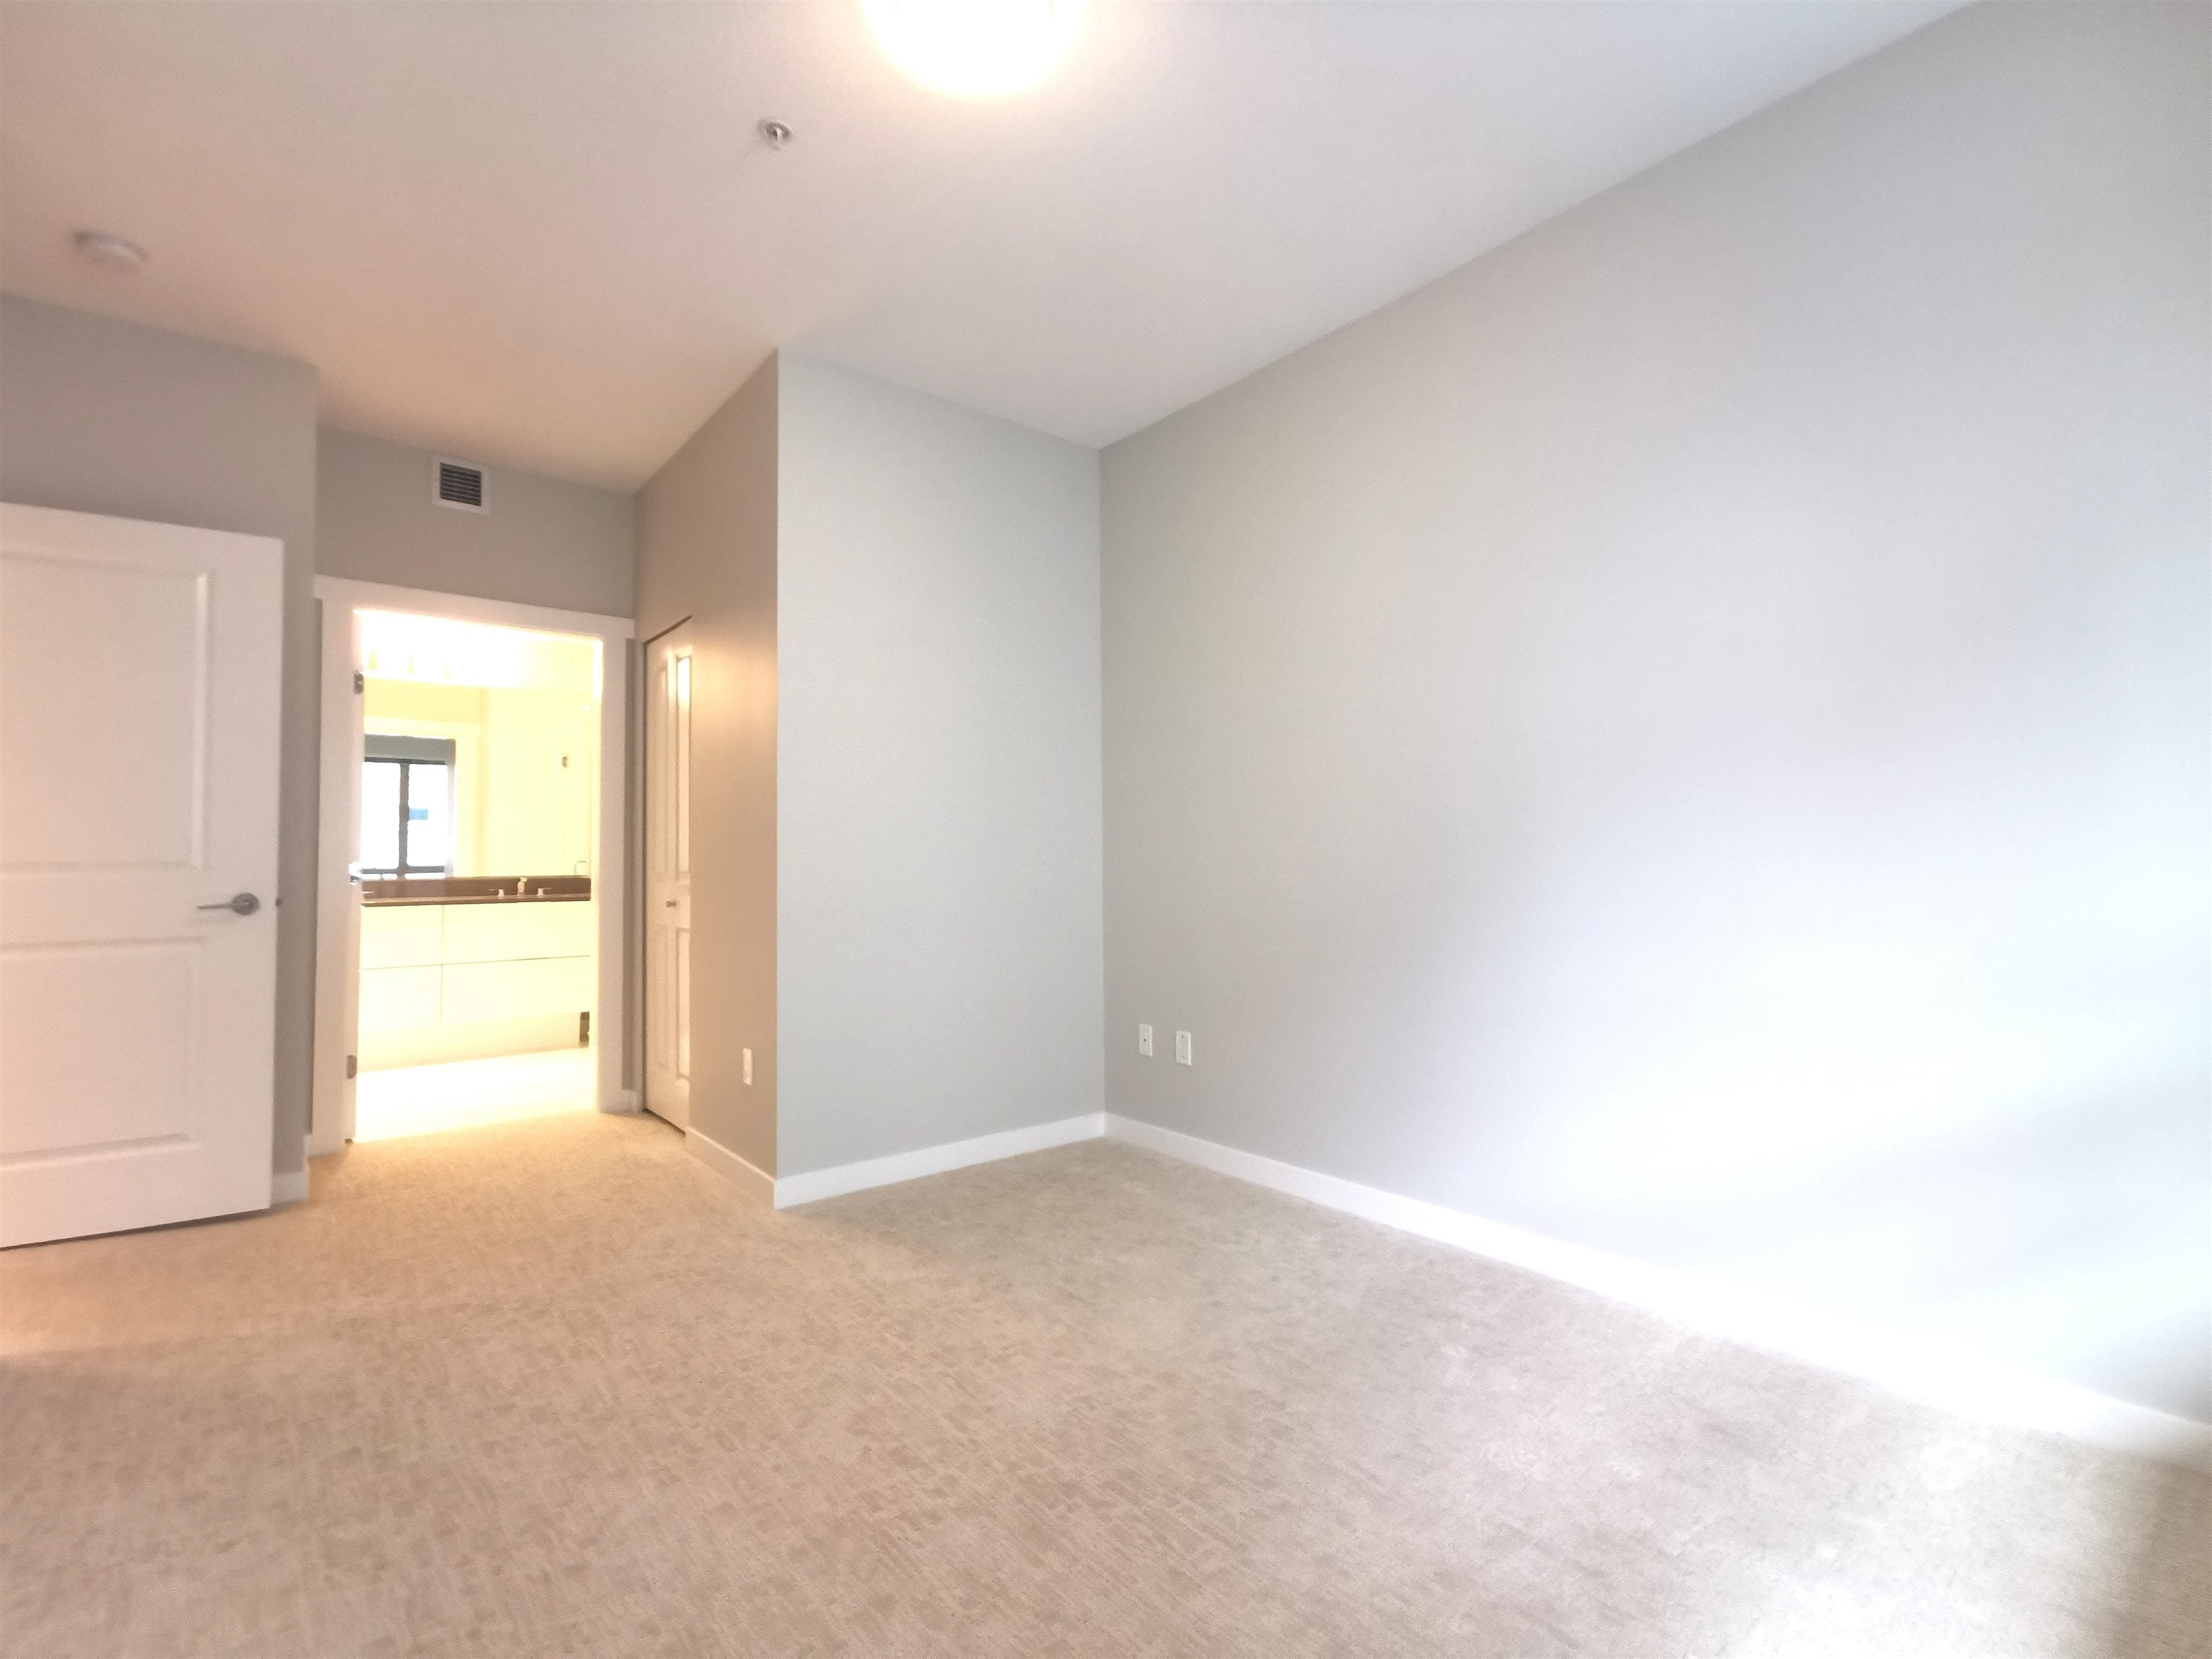 307 2651 LIBRARY LANE - Lynn Valley Apartment/Condo for sale, 2 Bedrooms (R2623451) - #11